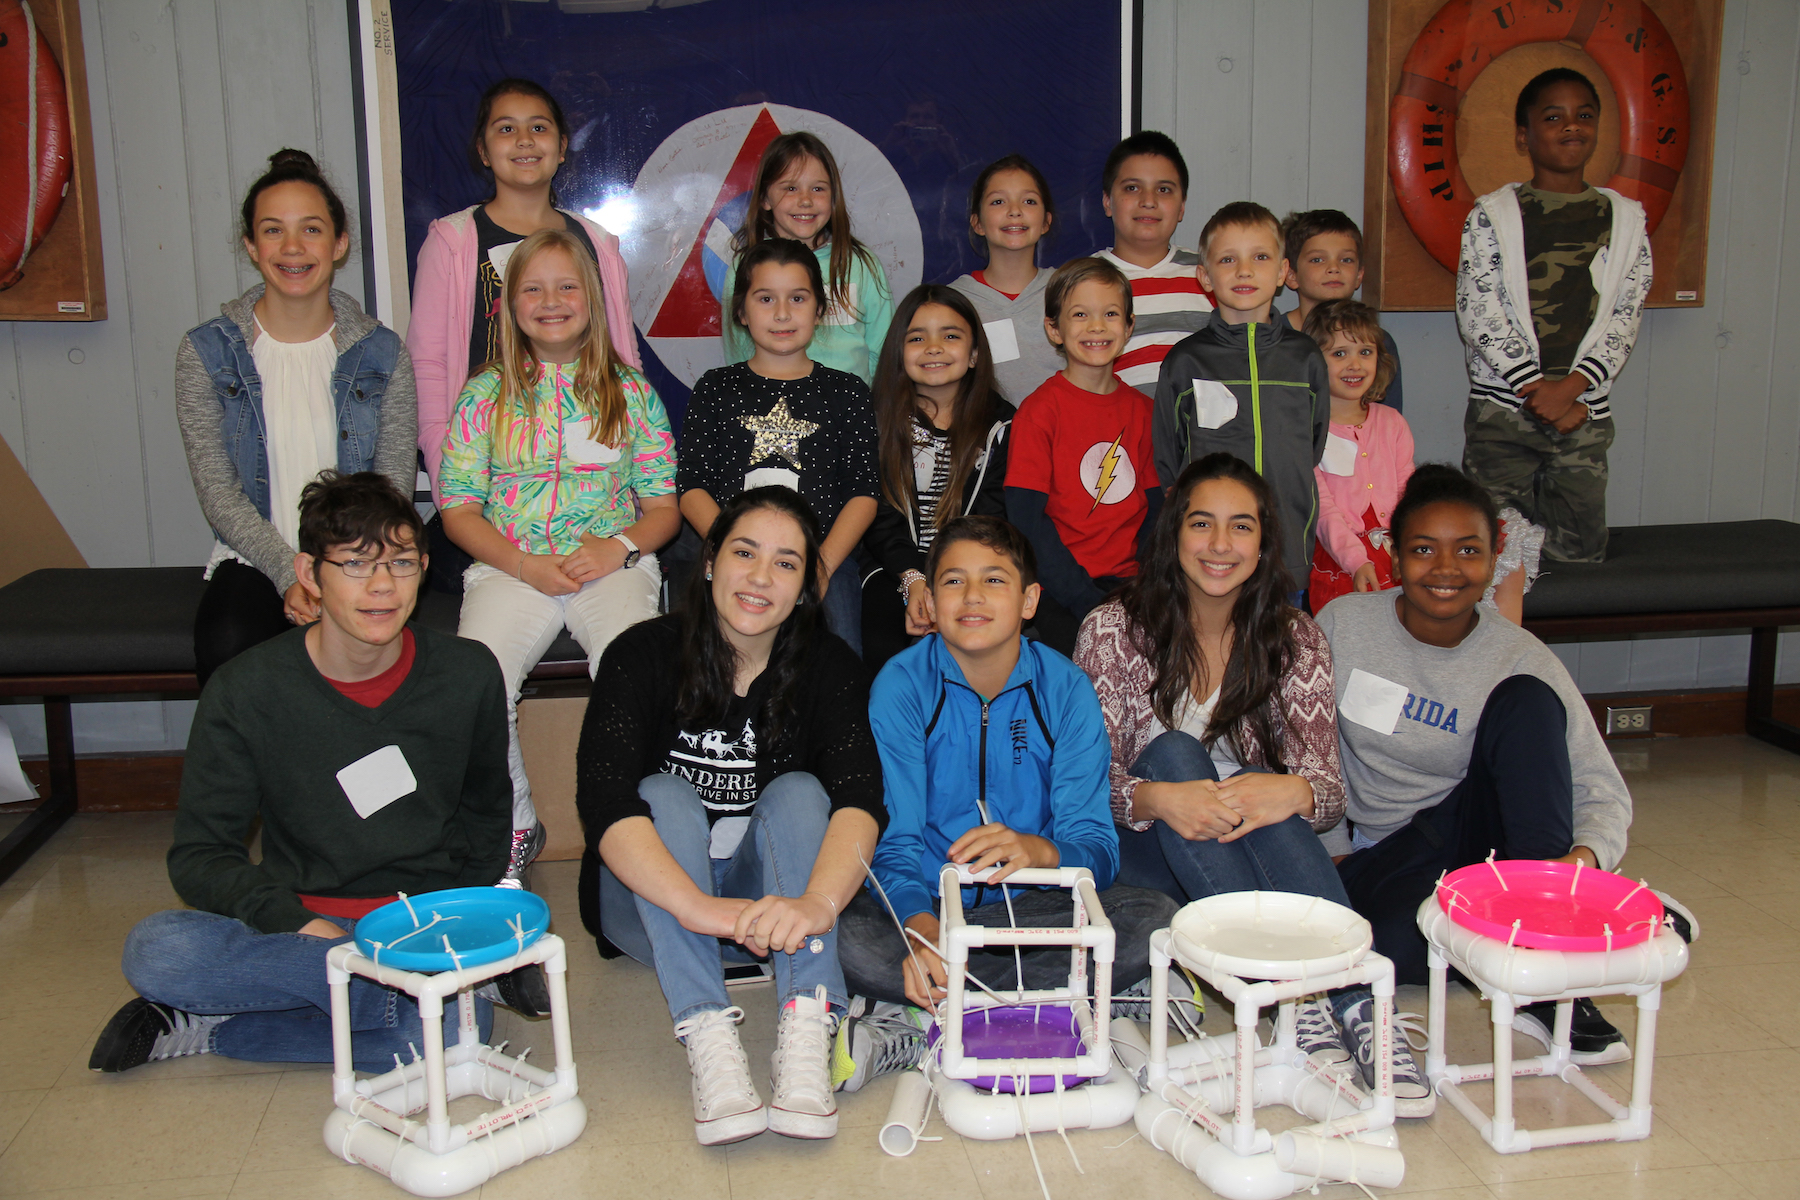 Participants in AOML's 2016 Bring Your Child to Work Day. Image credit: NOAA